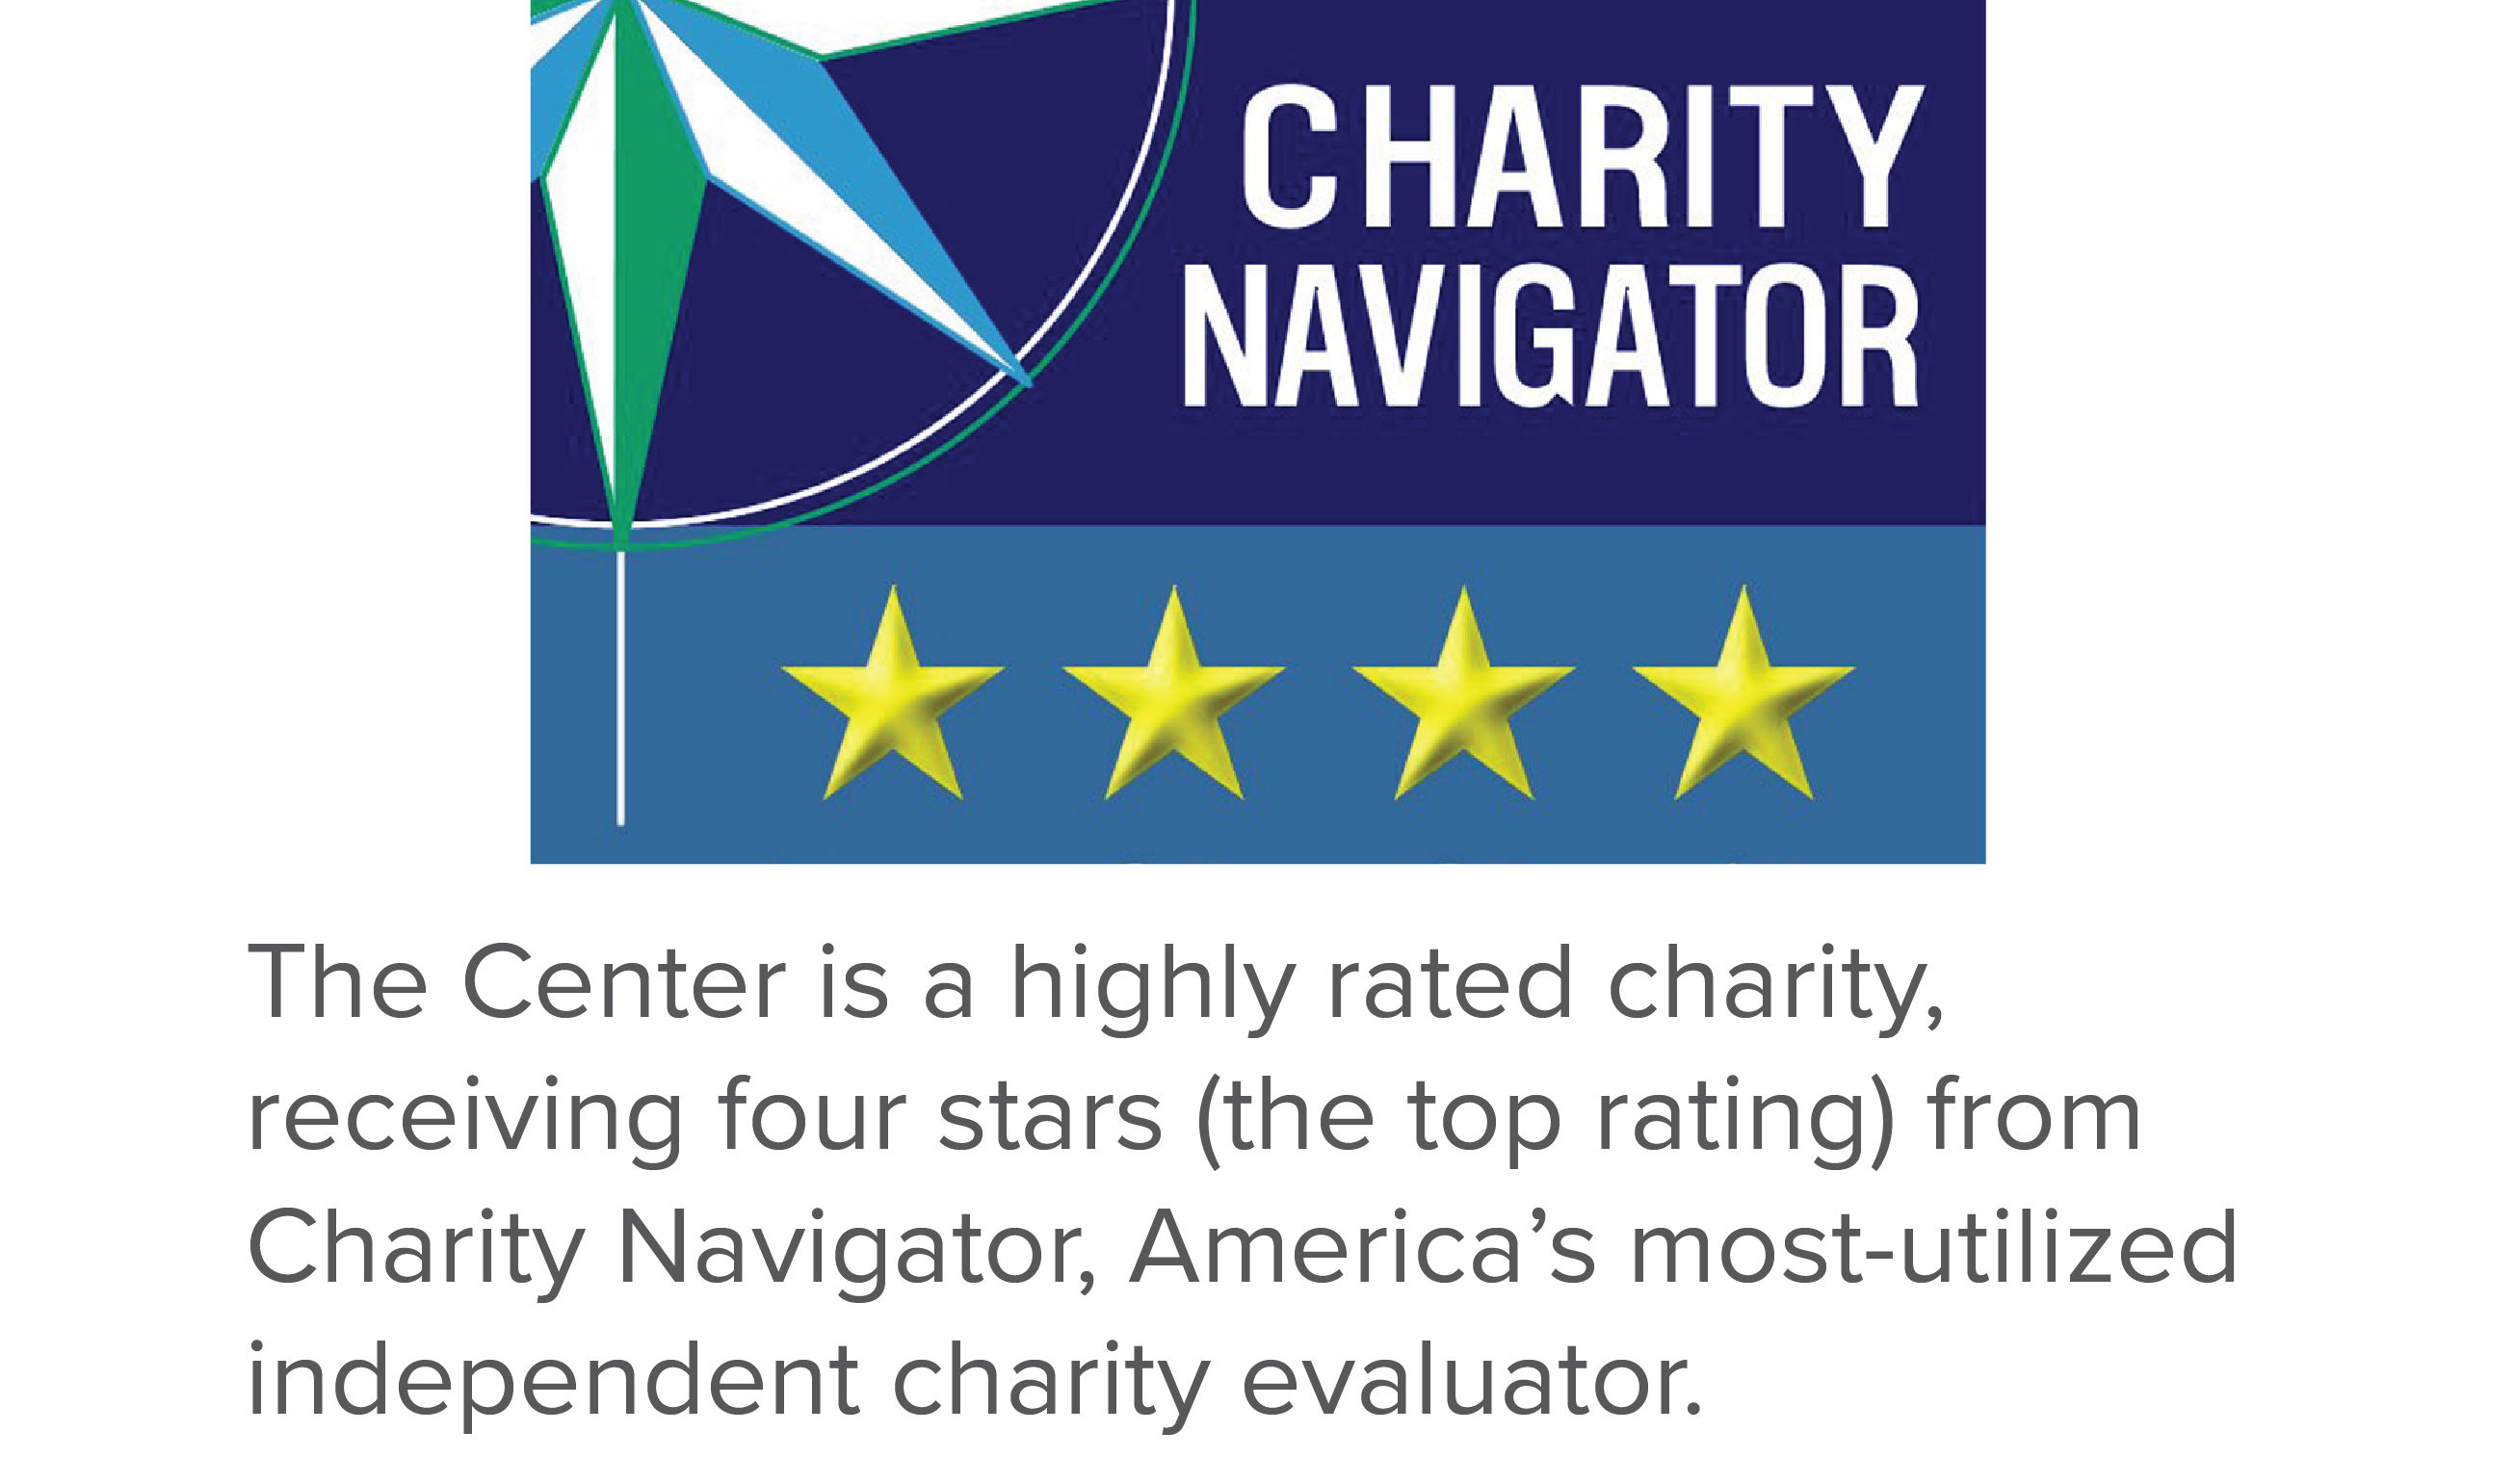 The Center is a highly rated charity, receiving four stars (the top rating) from Charity Navigator, America's most-utilized independent charity evaluator.